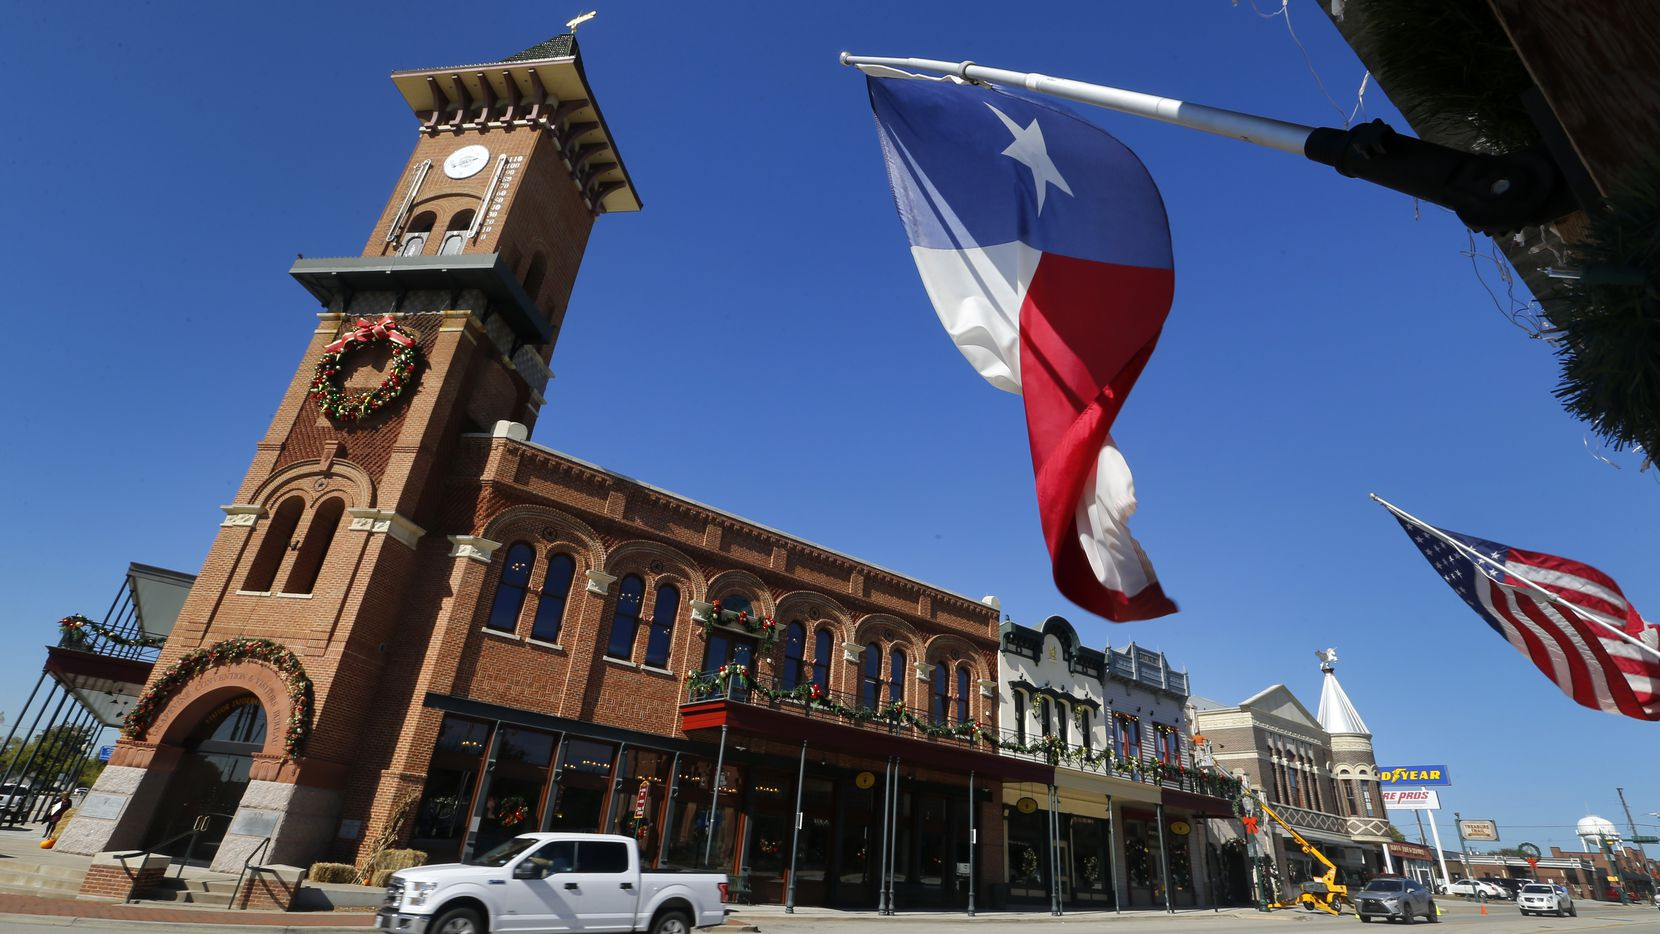 The Texas flag flies in front of the Grapevine Convention and Visitors Bureau building along the historic Main Street in downtown Grapevine.